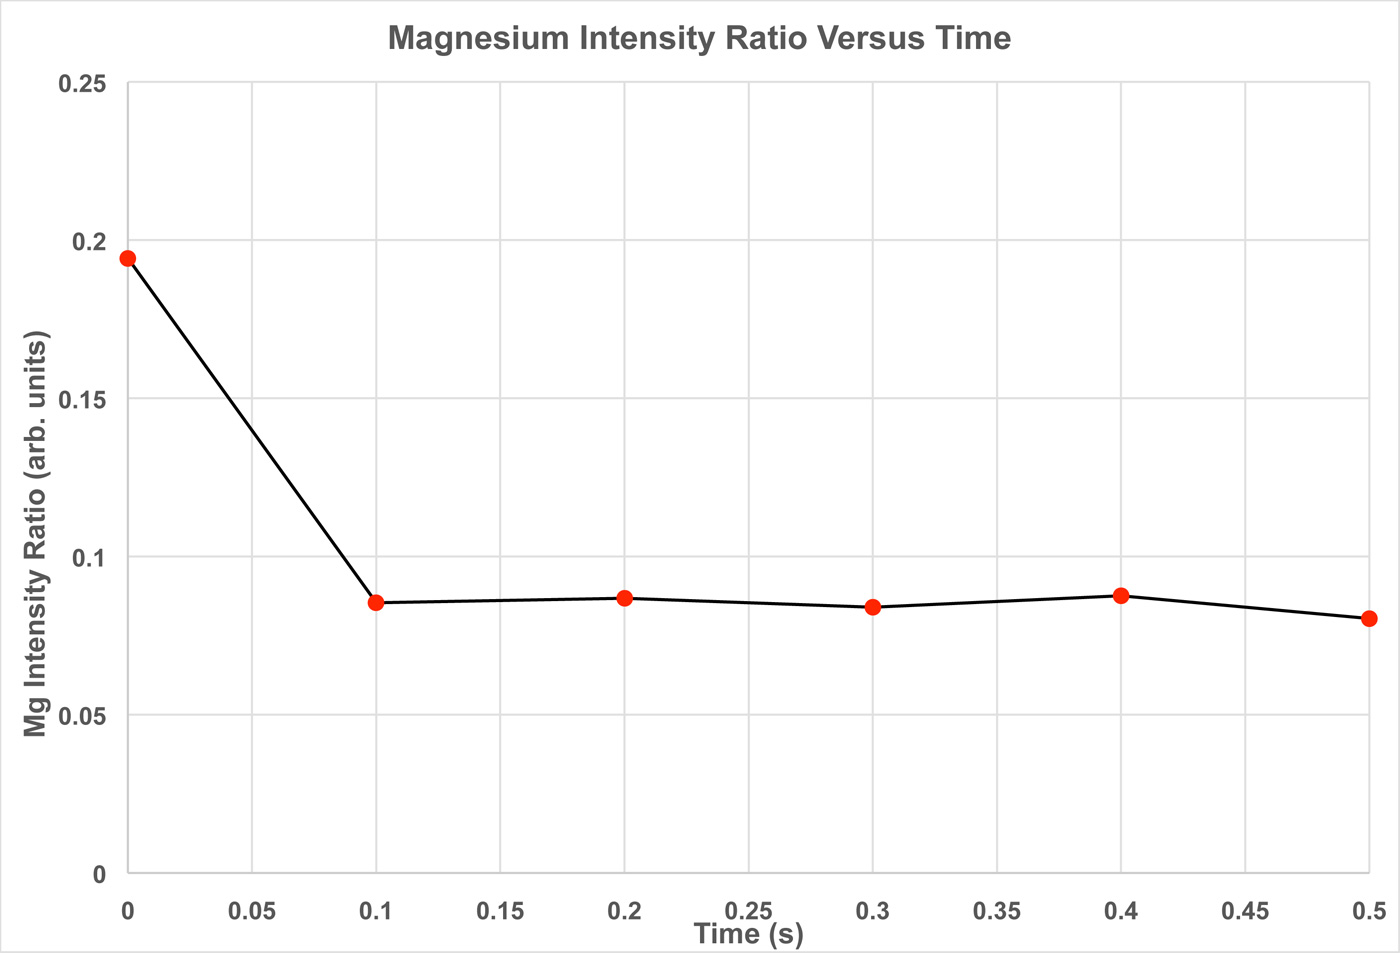 Magnesium Intensity Ratio Versus Time Plot